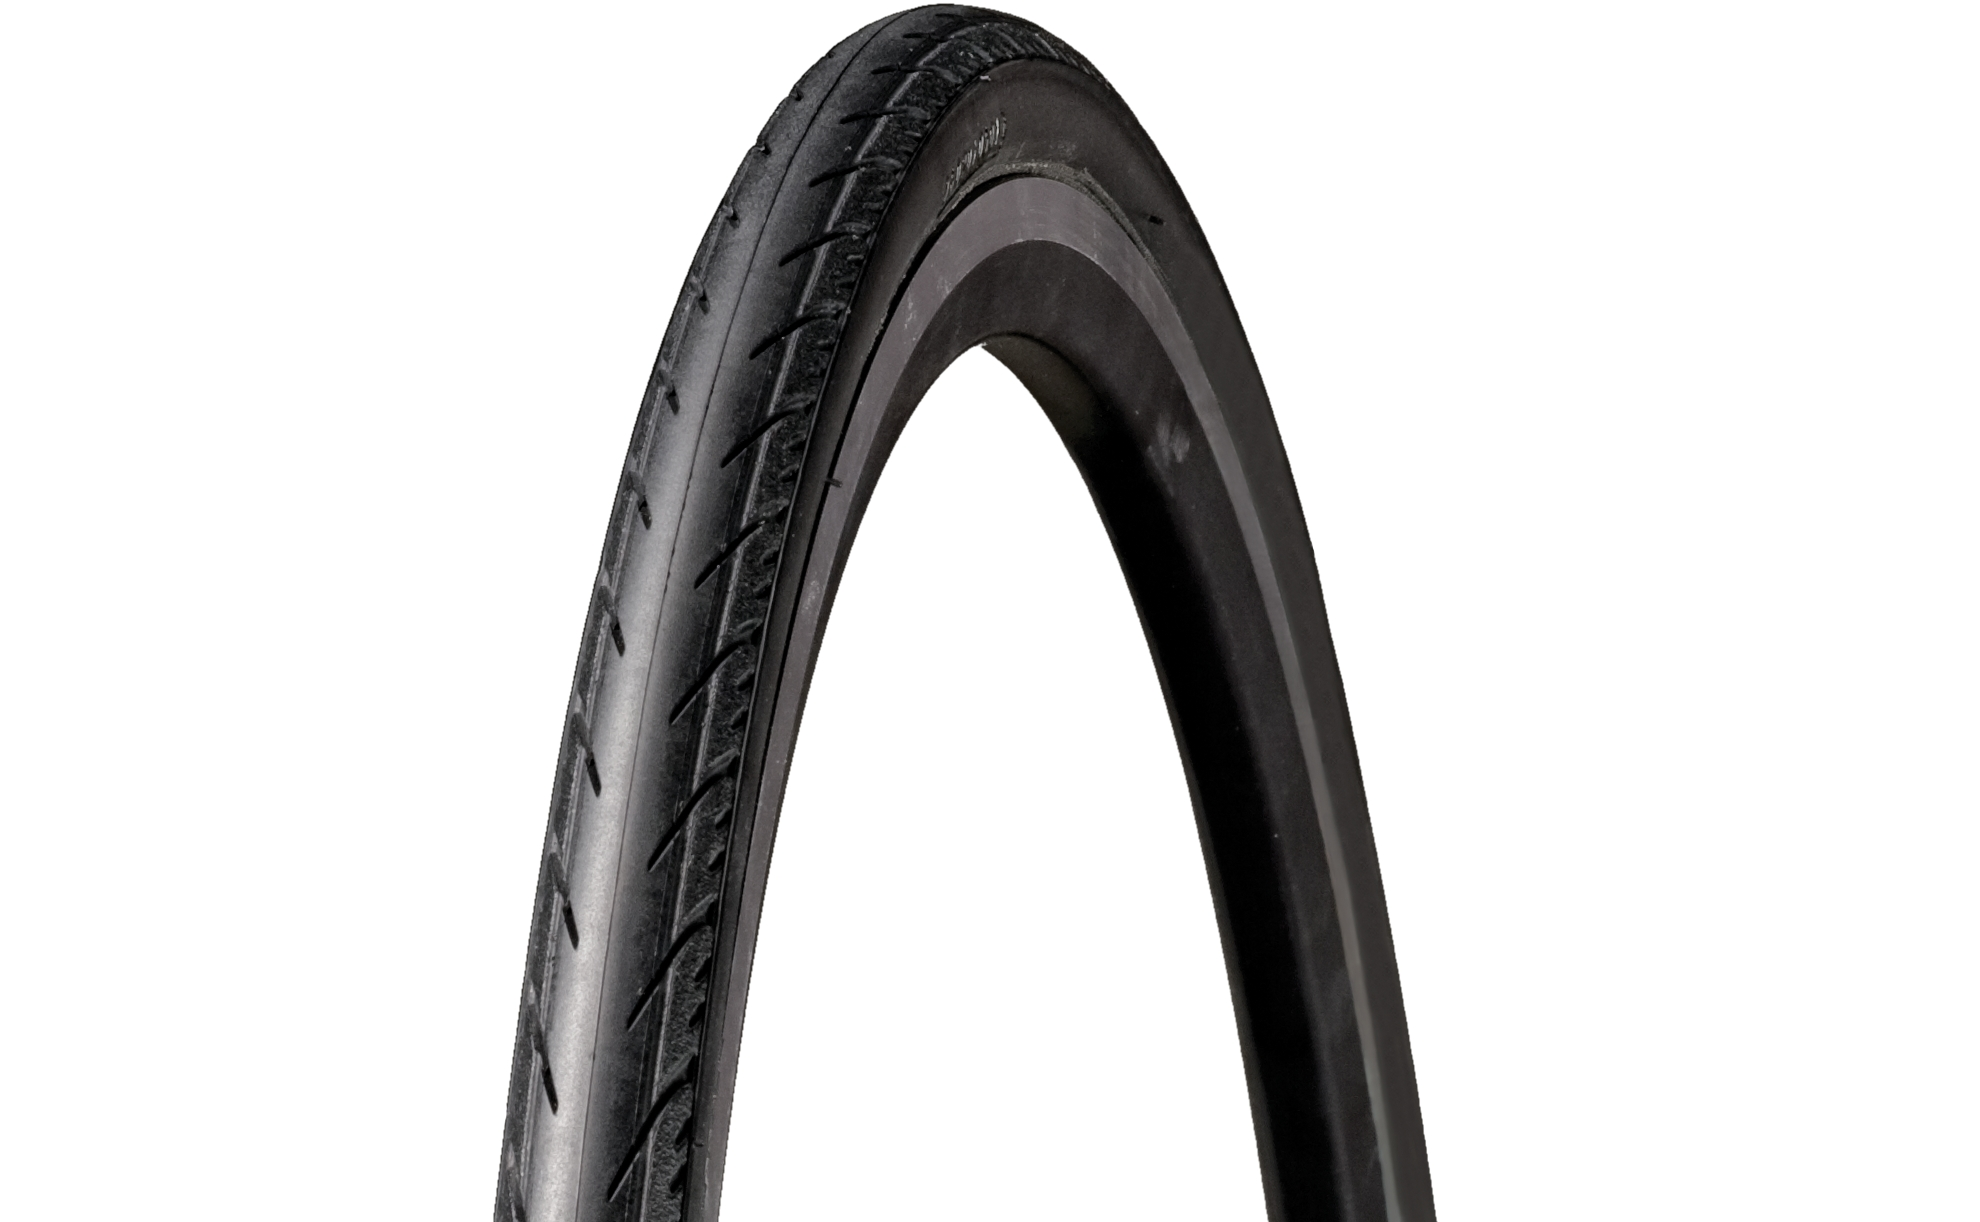 Bontrager T1 Road Tire | Bike tires & tubes | Cycling ...